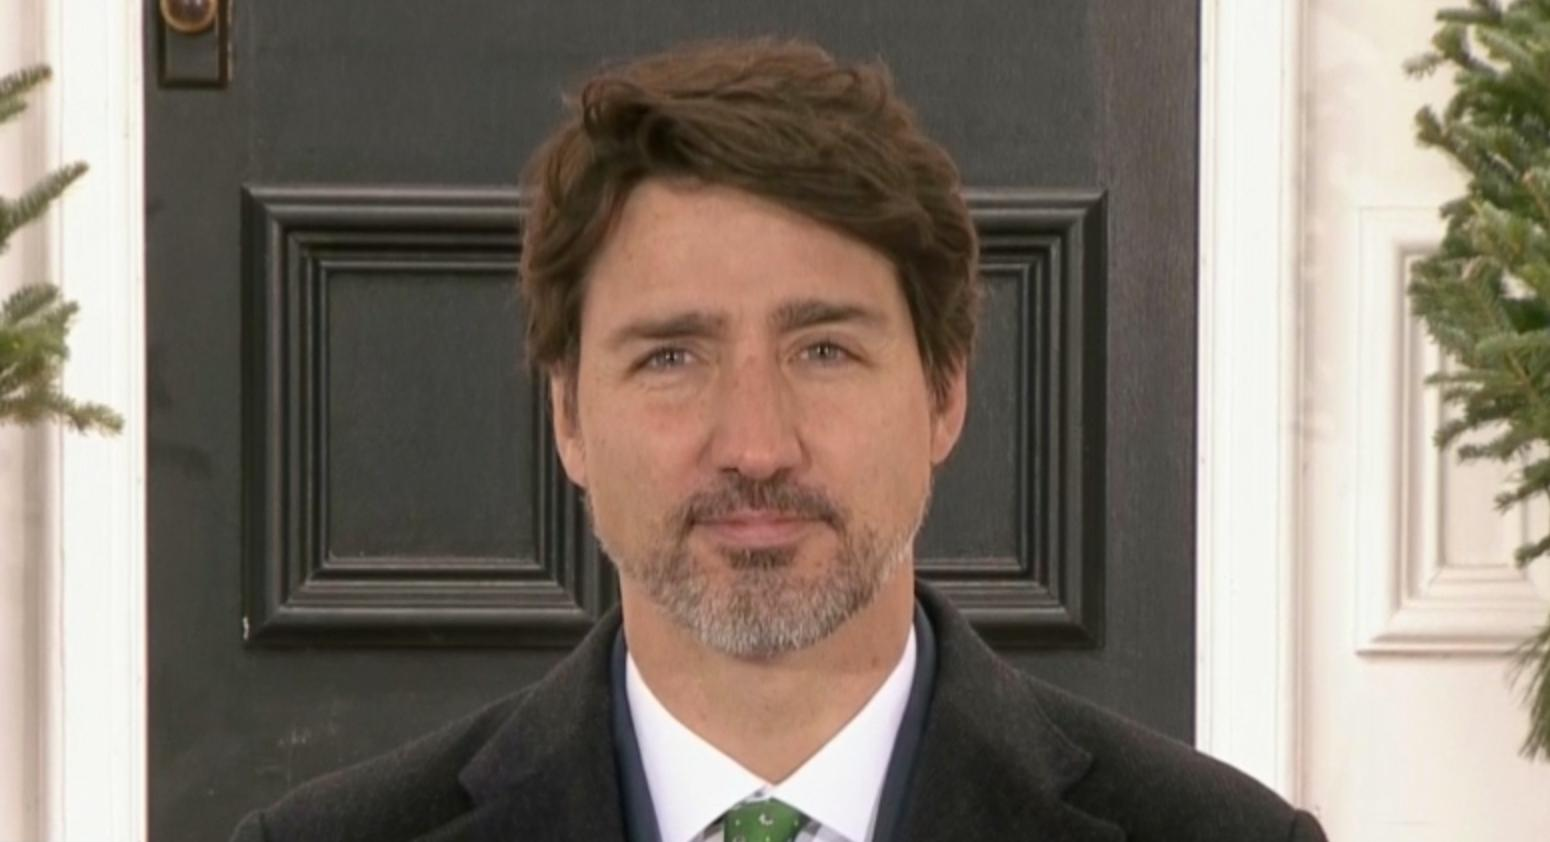 CKTB - NEWS - Justin Trudeau COVID March 31 2020